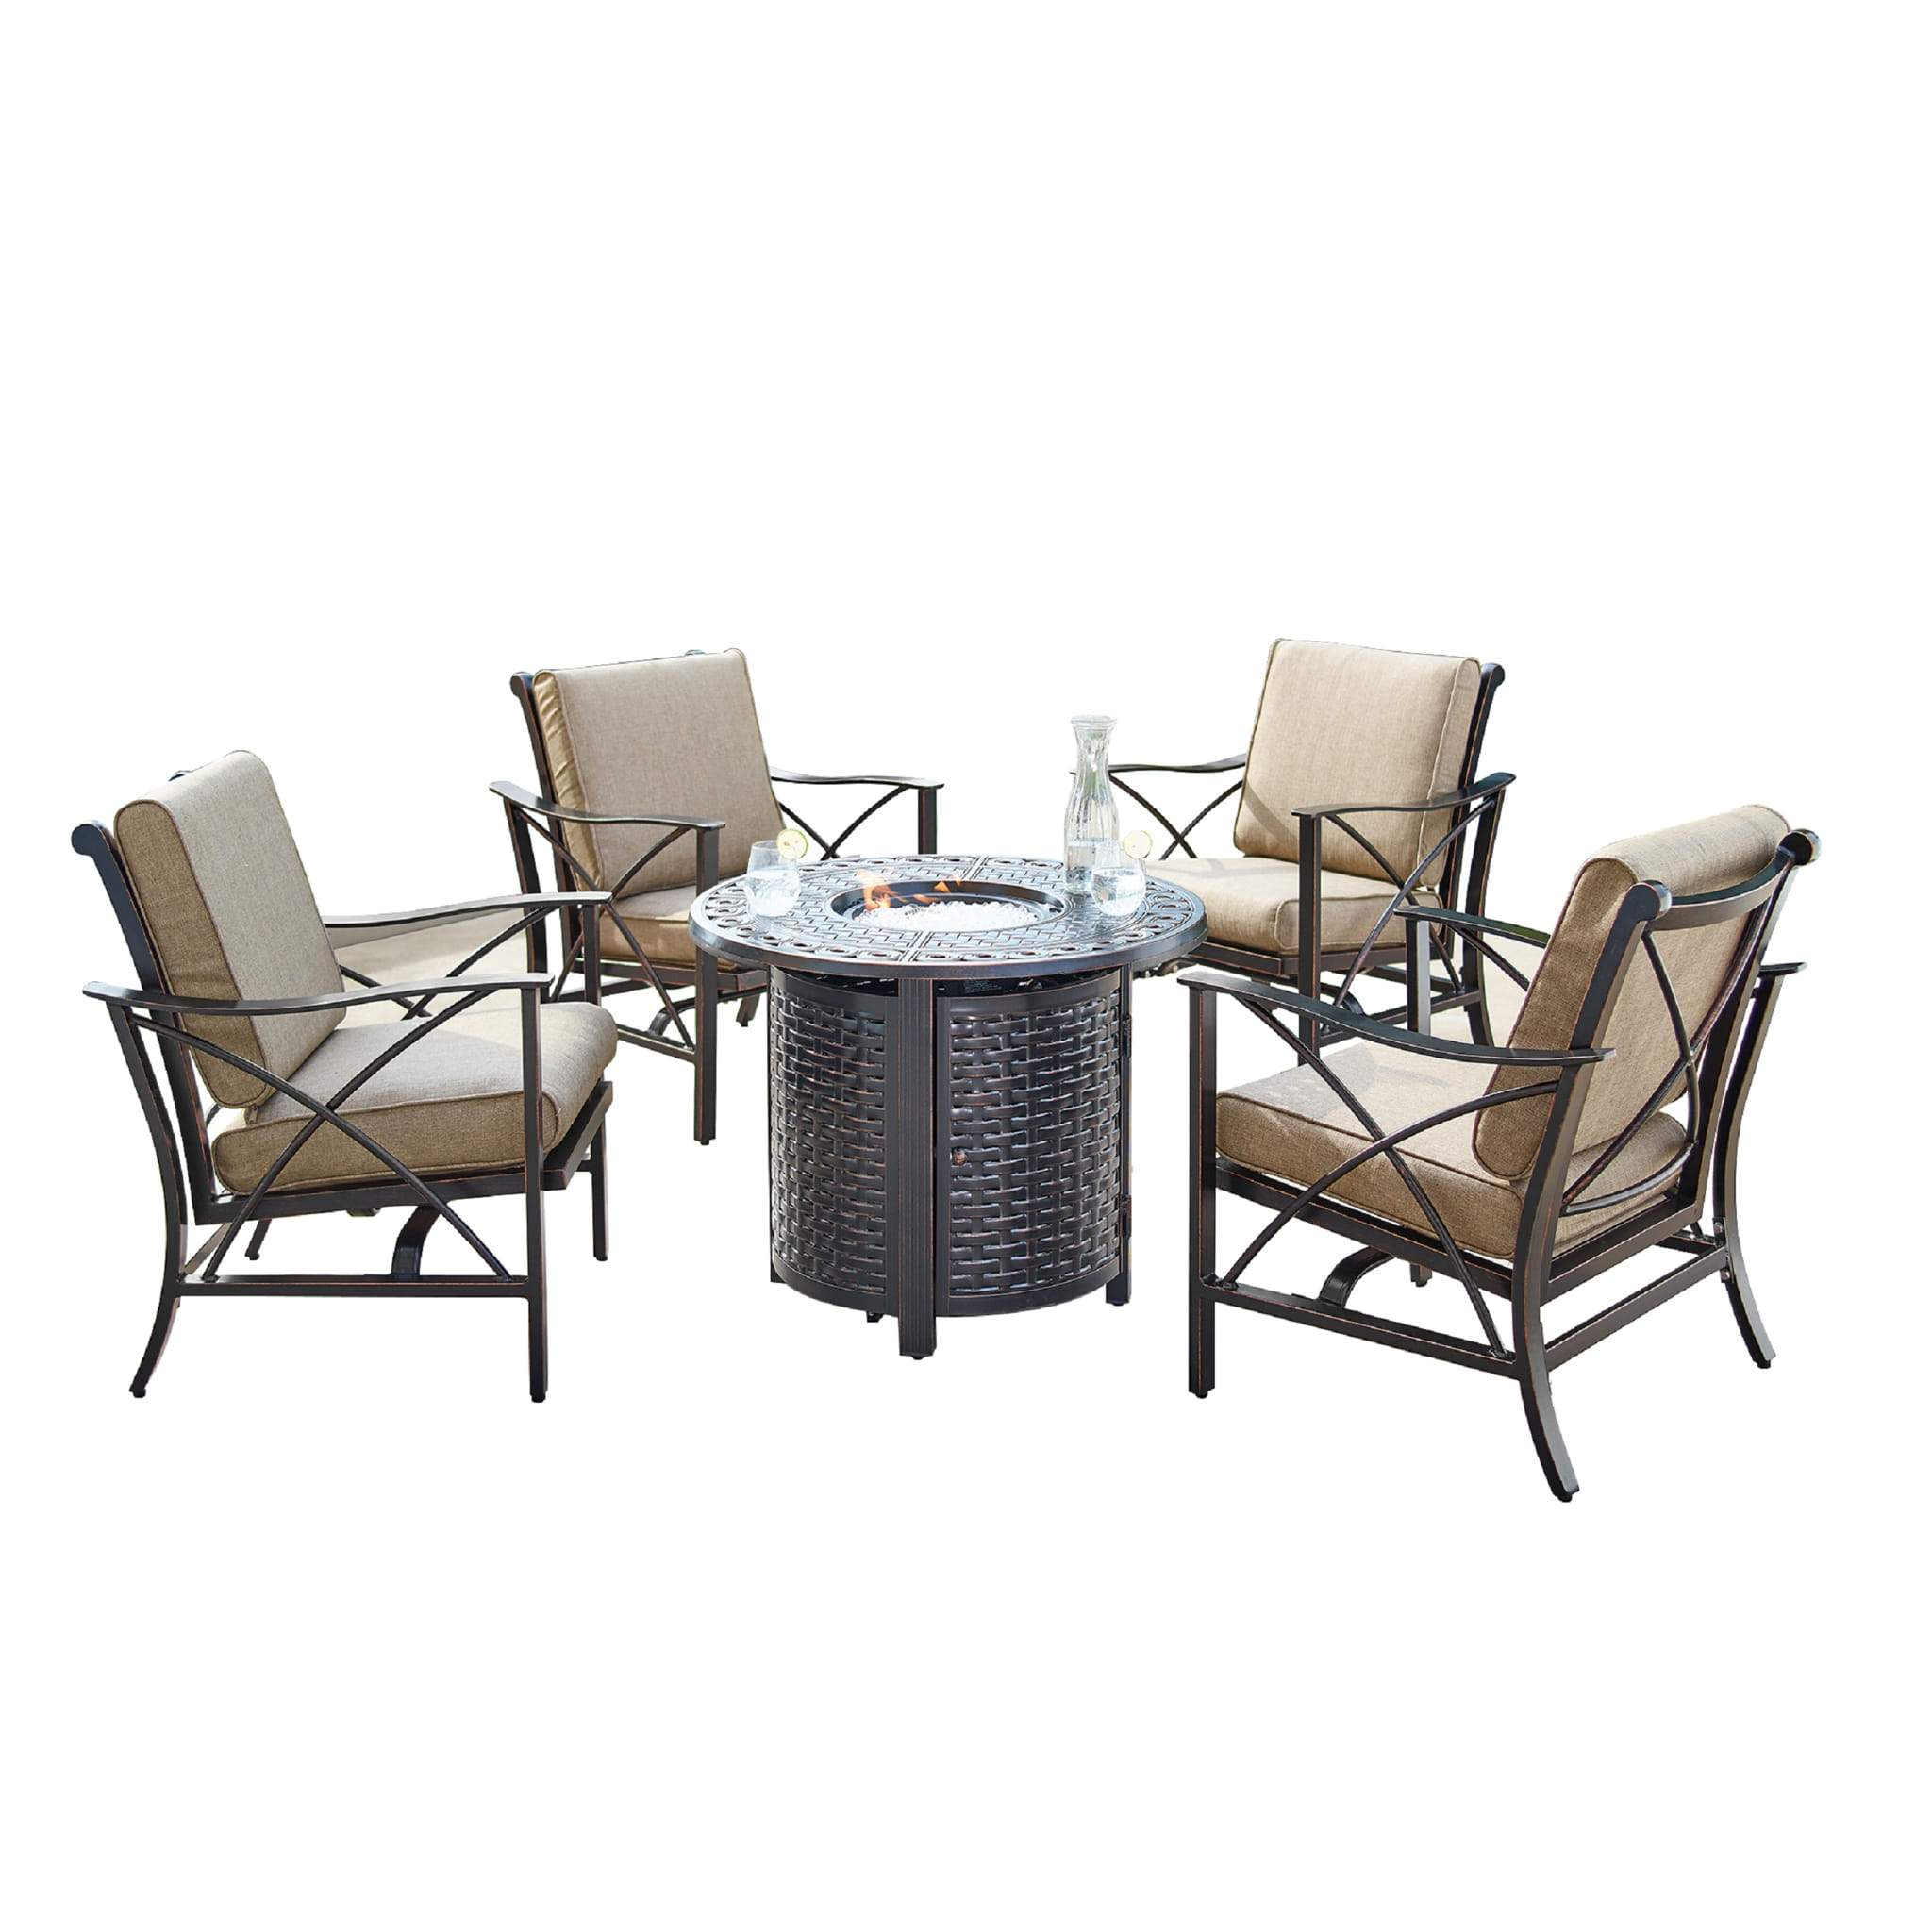 Oakland Living Chile-Romero 5-Piece Outdoor Fire Table Set - CHILE-ROMERO-5PC-AC Outdoor Fire Table Sets Oakland Living